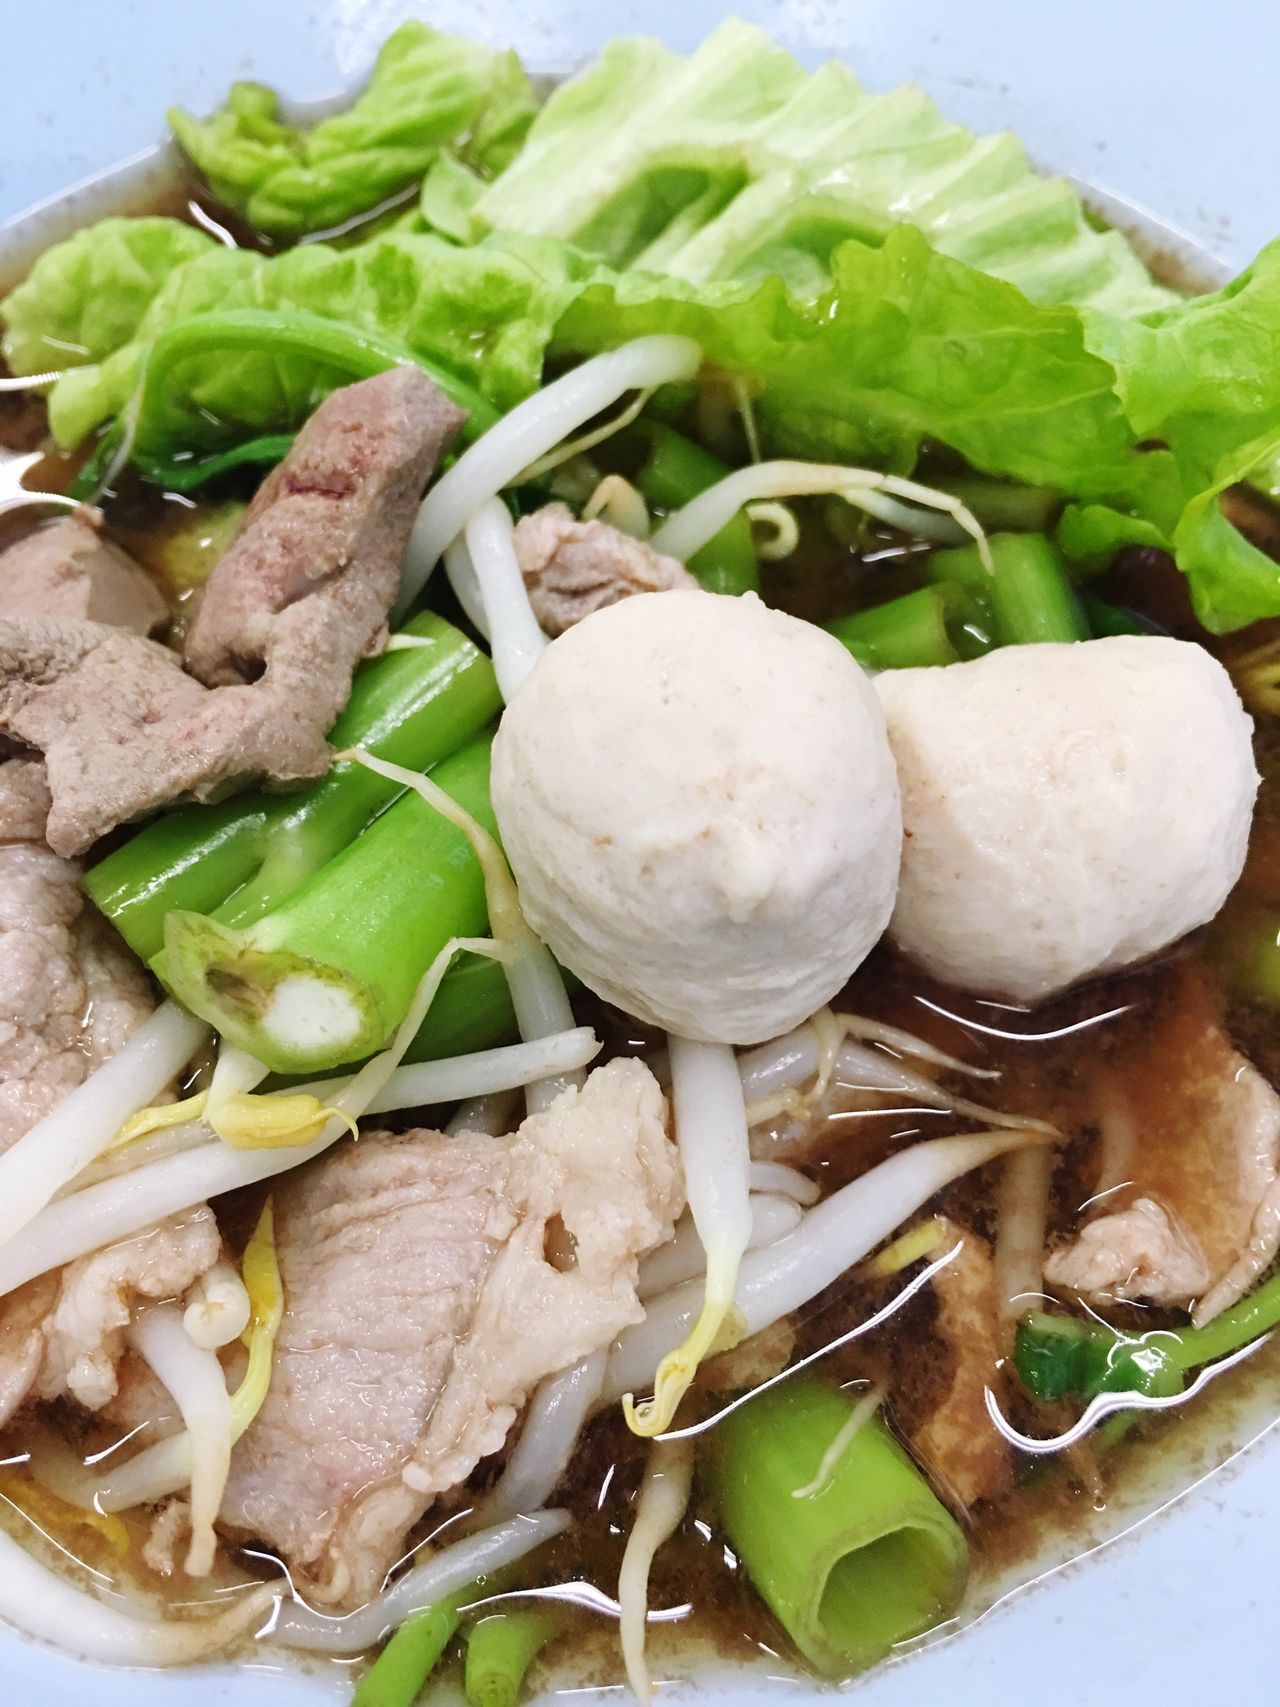 Pork ball noodles in thai style Pork Pork Ball Thai Noodles Morning Glory Noodles Food Yummy Hungry Eyeem Noodles Eyeem Food  Eyeem Thai Food Best Shot Zoom Ready-to-eat Vegetable